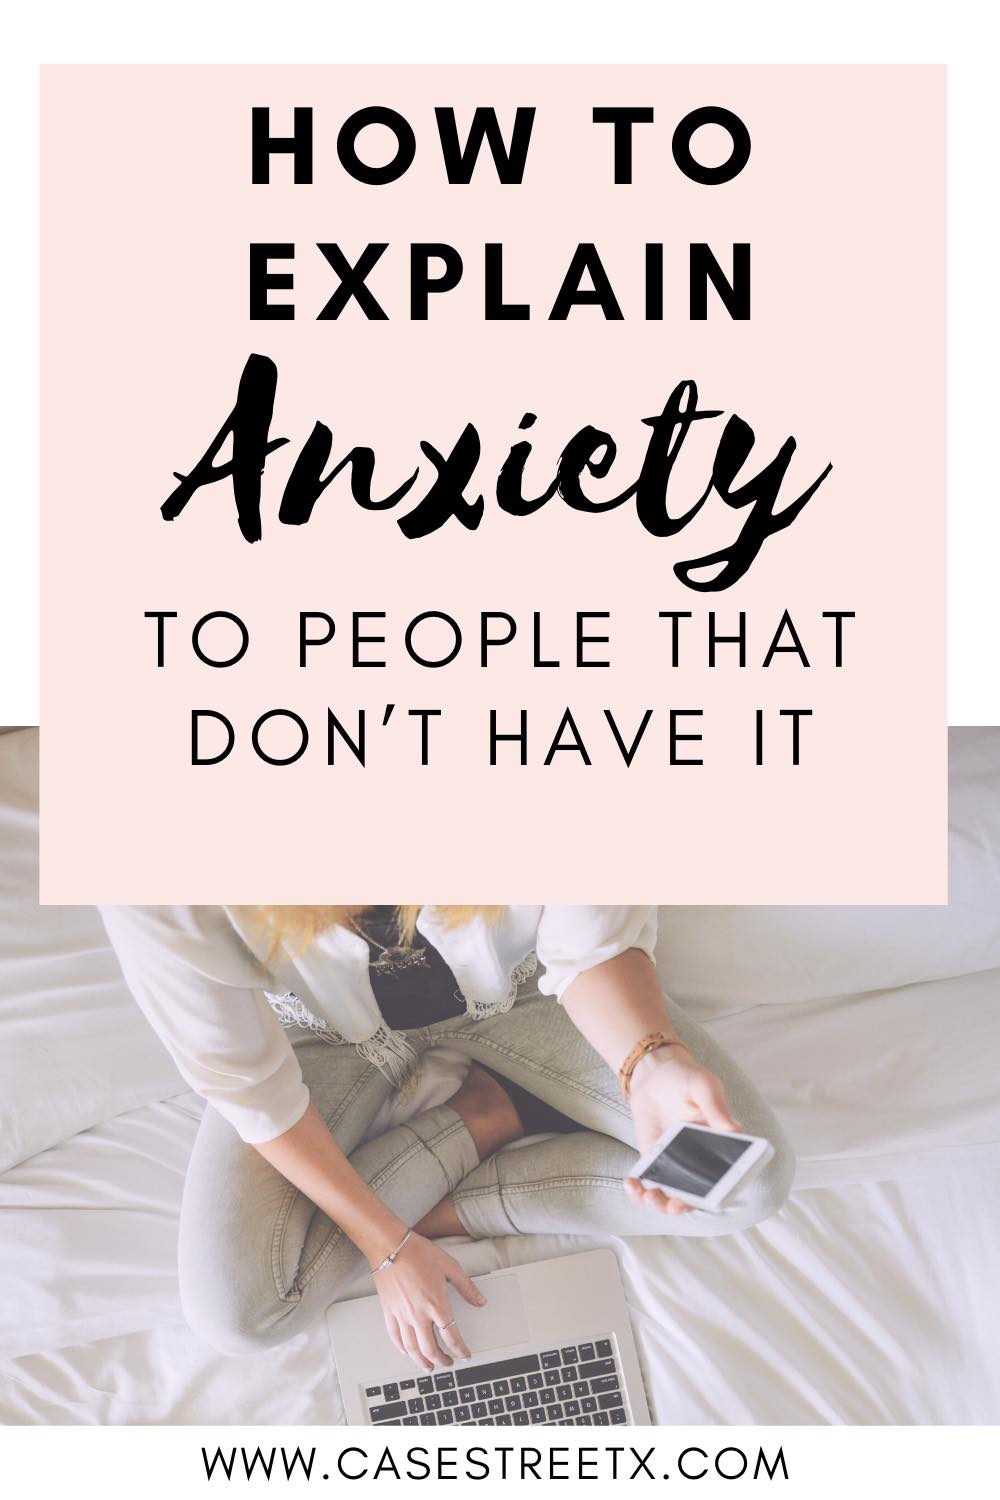 How to explain anxiety